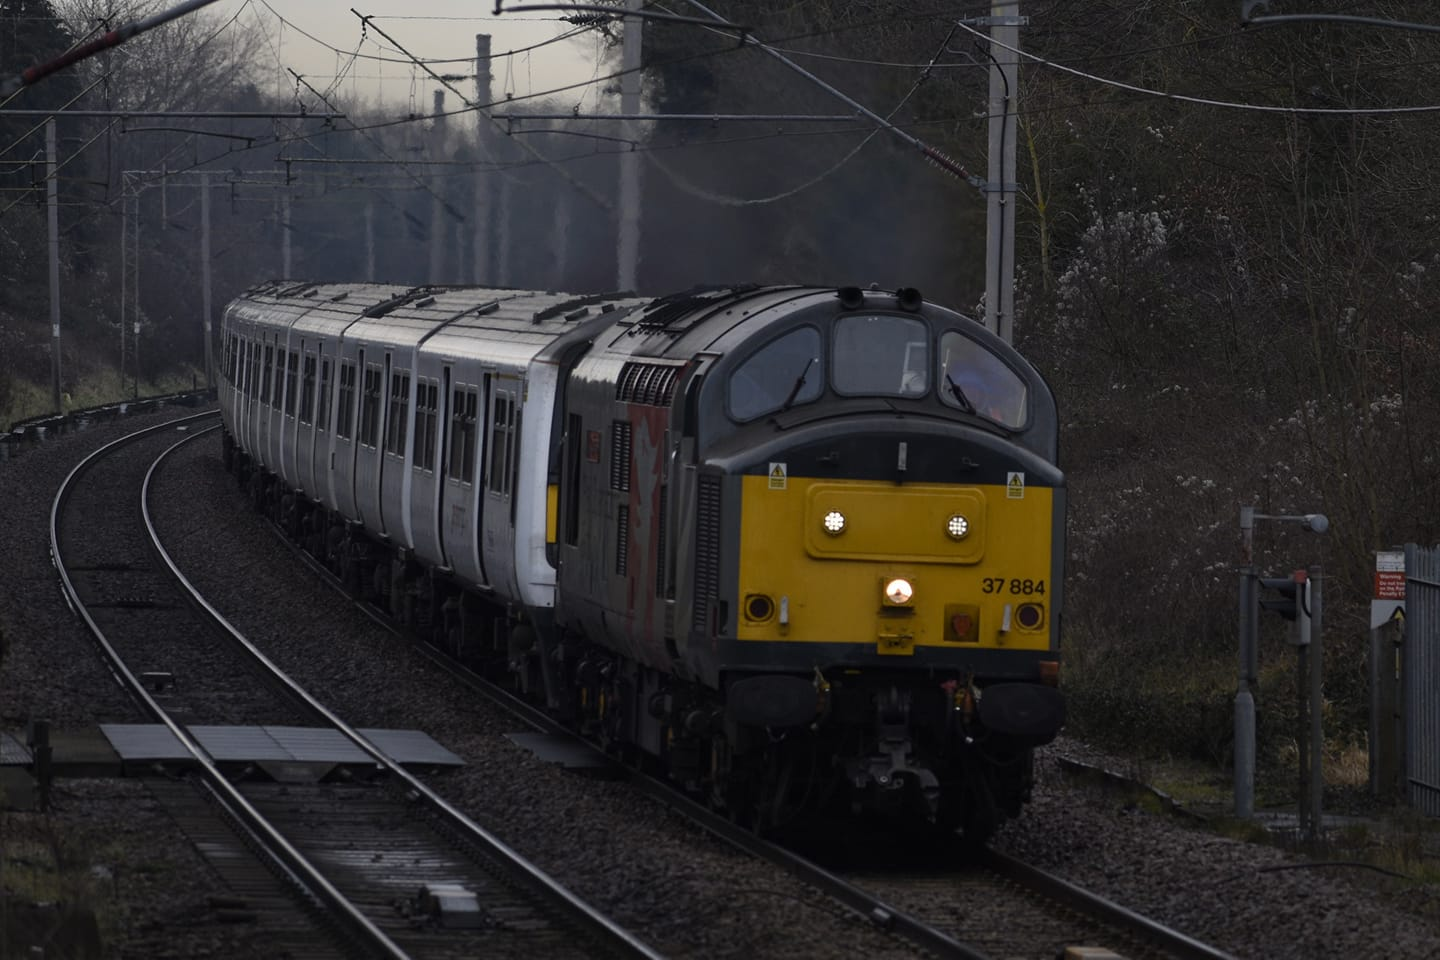 37884 ROG + 1st '321s TO NEWPORT FOR SCRAP (MARKS TEY) 26-1-21 (J COLE)